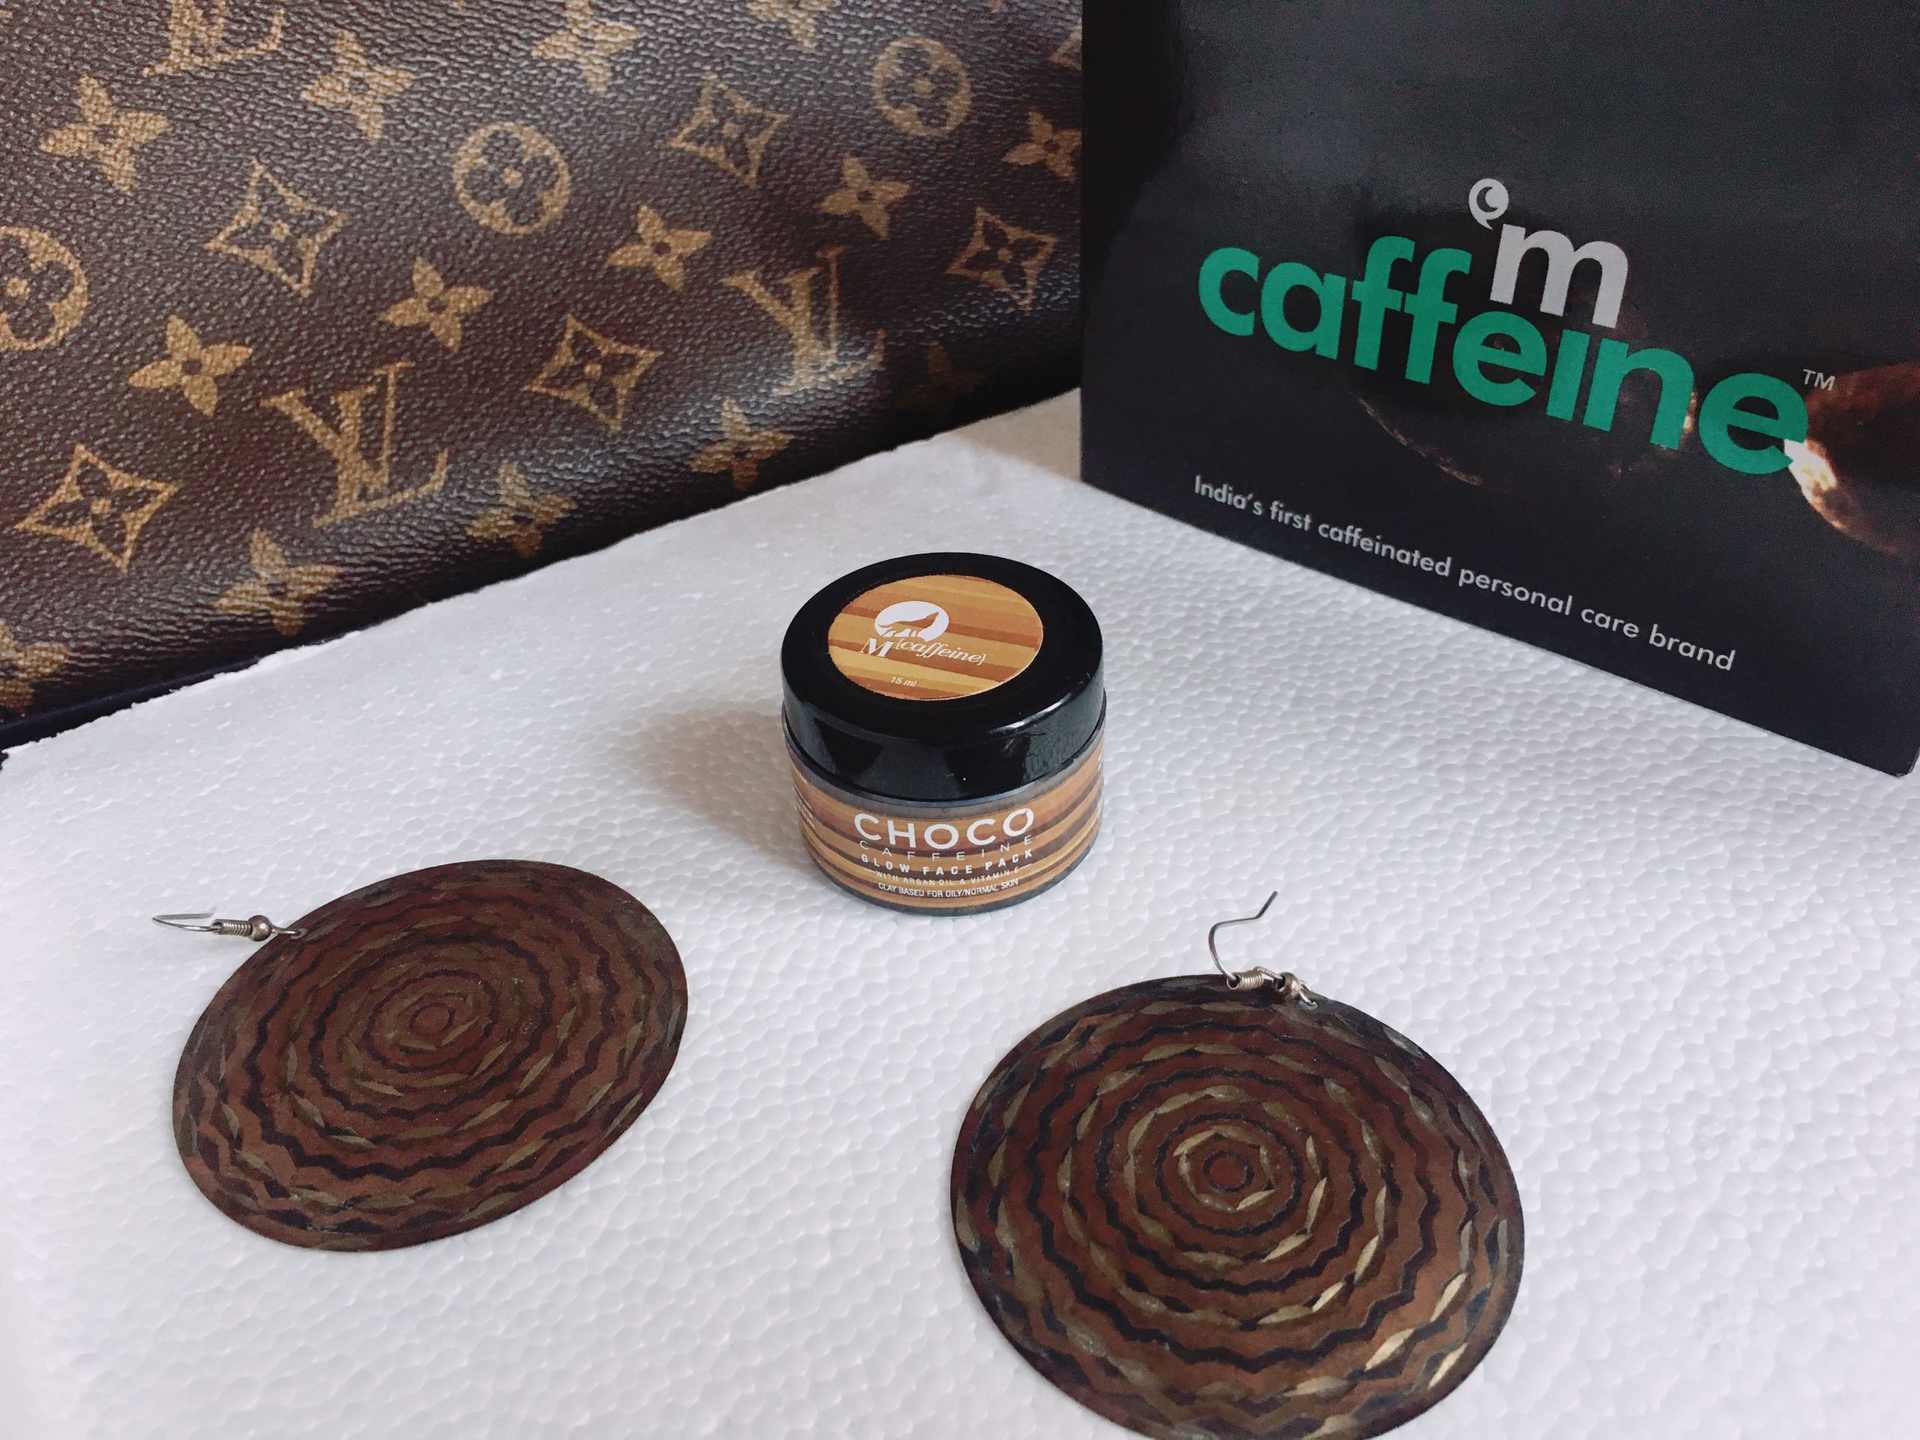 Mcaffeine Choco Caffeine Glow face pack - Review image